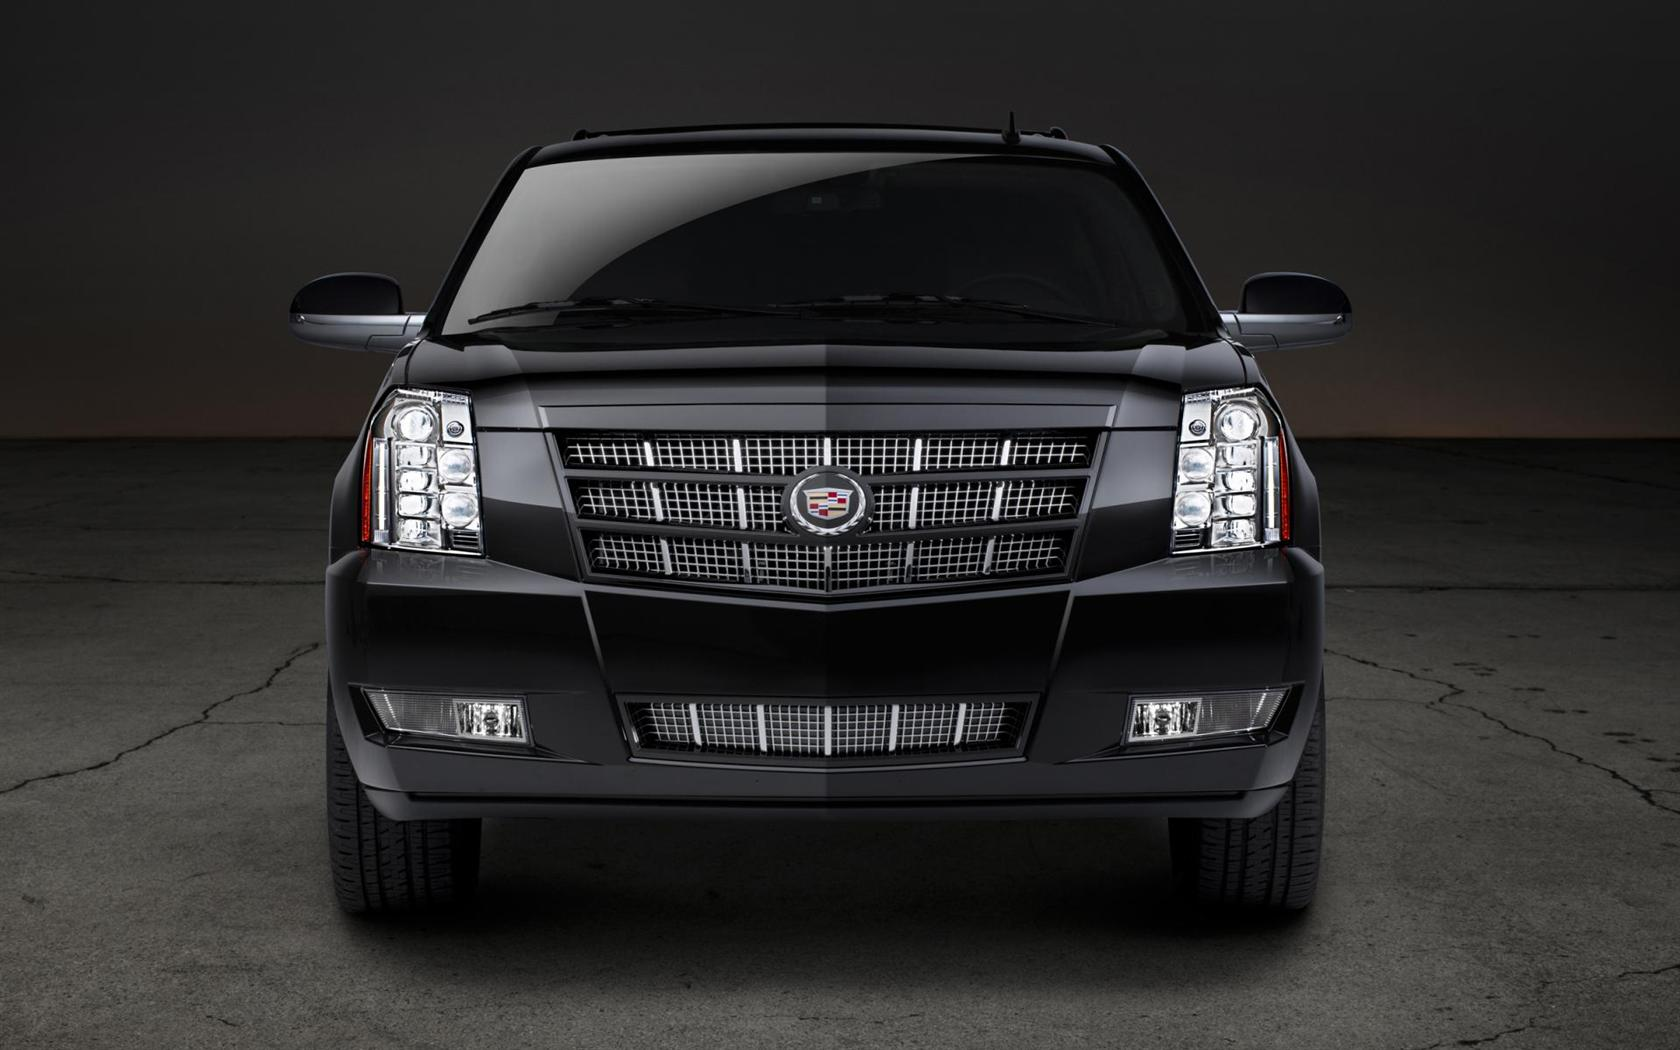 2013 Ccadillac Escalade SUV Image Credit Wallpaper For Android Wallpaper